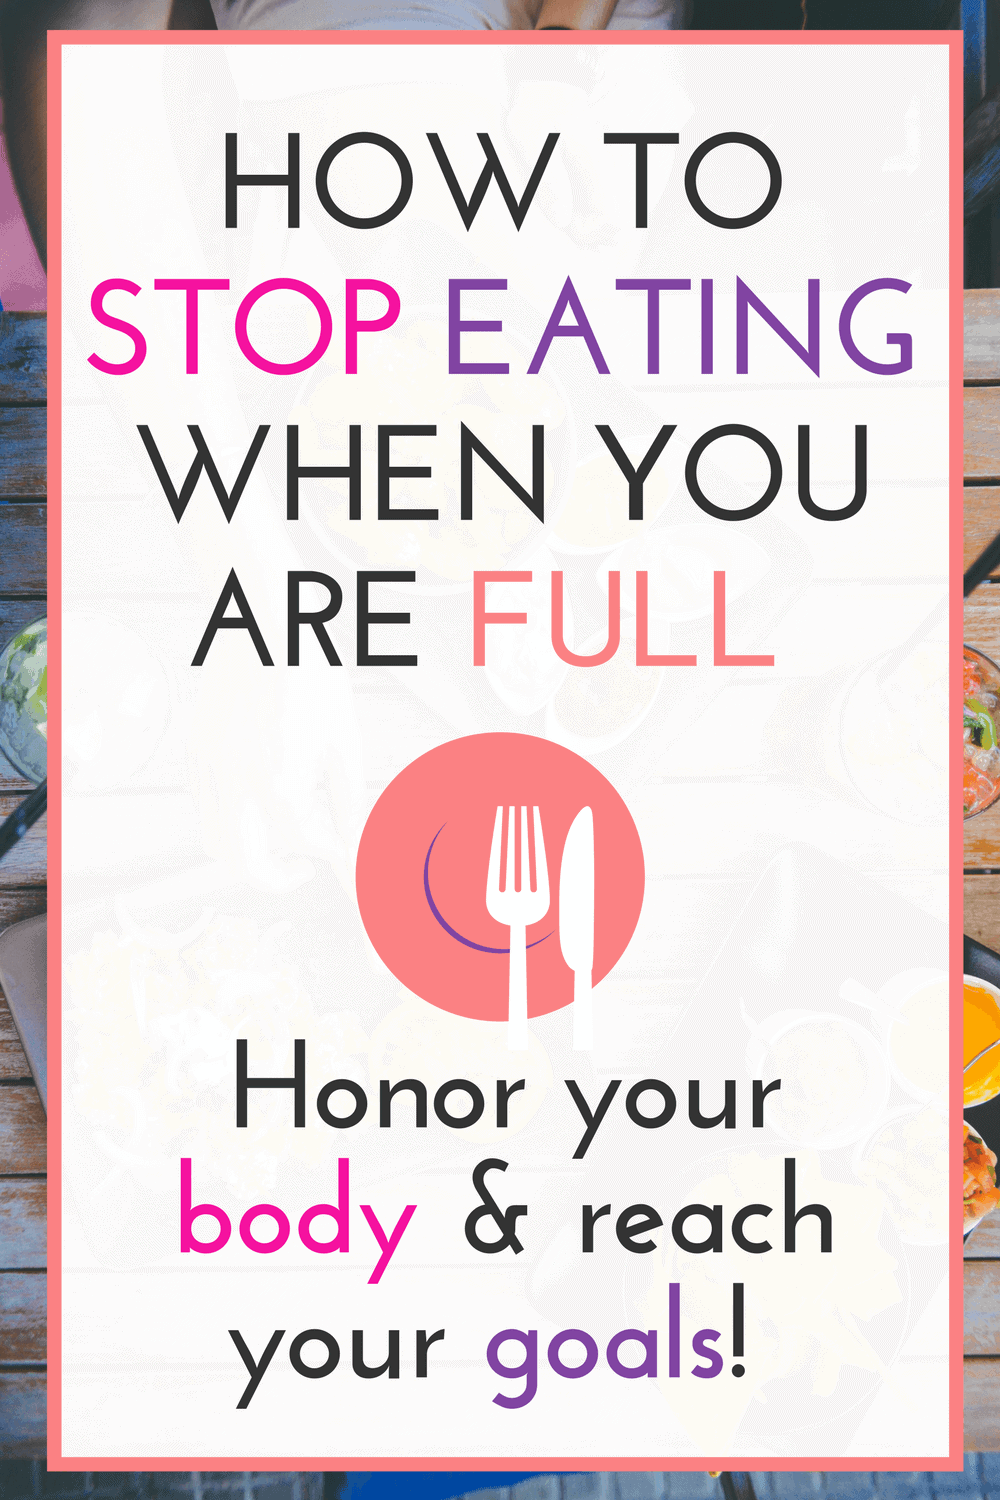 We all know we should stop eating when we are no longer hungry or bored but how do you know when you are full? No weight loss diet teaches you what it means to quit eating when you are satisfied! These tips will help you tune into your body so that you can eat what you need!